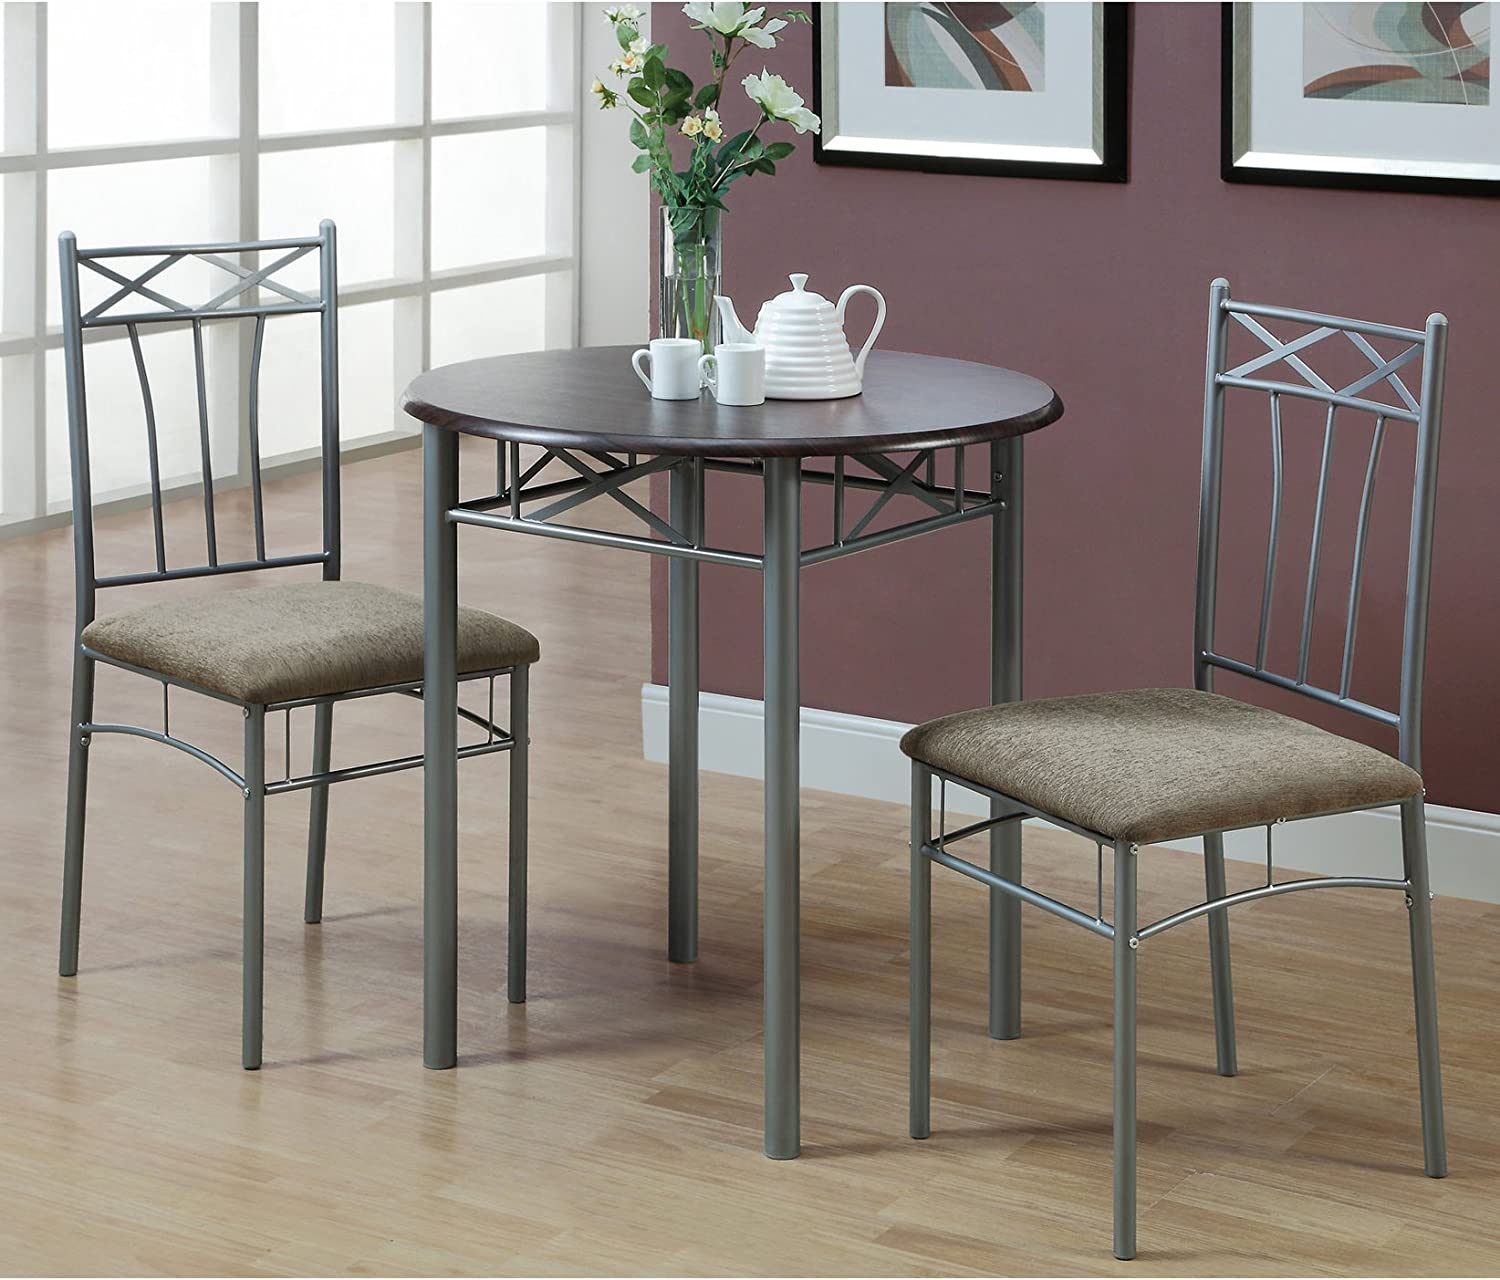 Monarch Specialties I 3075 Cappuccino Finish Wood And Silver Metal Bistro Dining Set 3 Piece Amazon Ca Home Kitchen